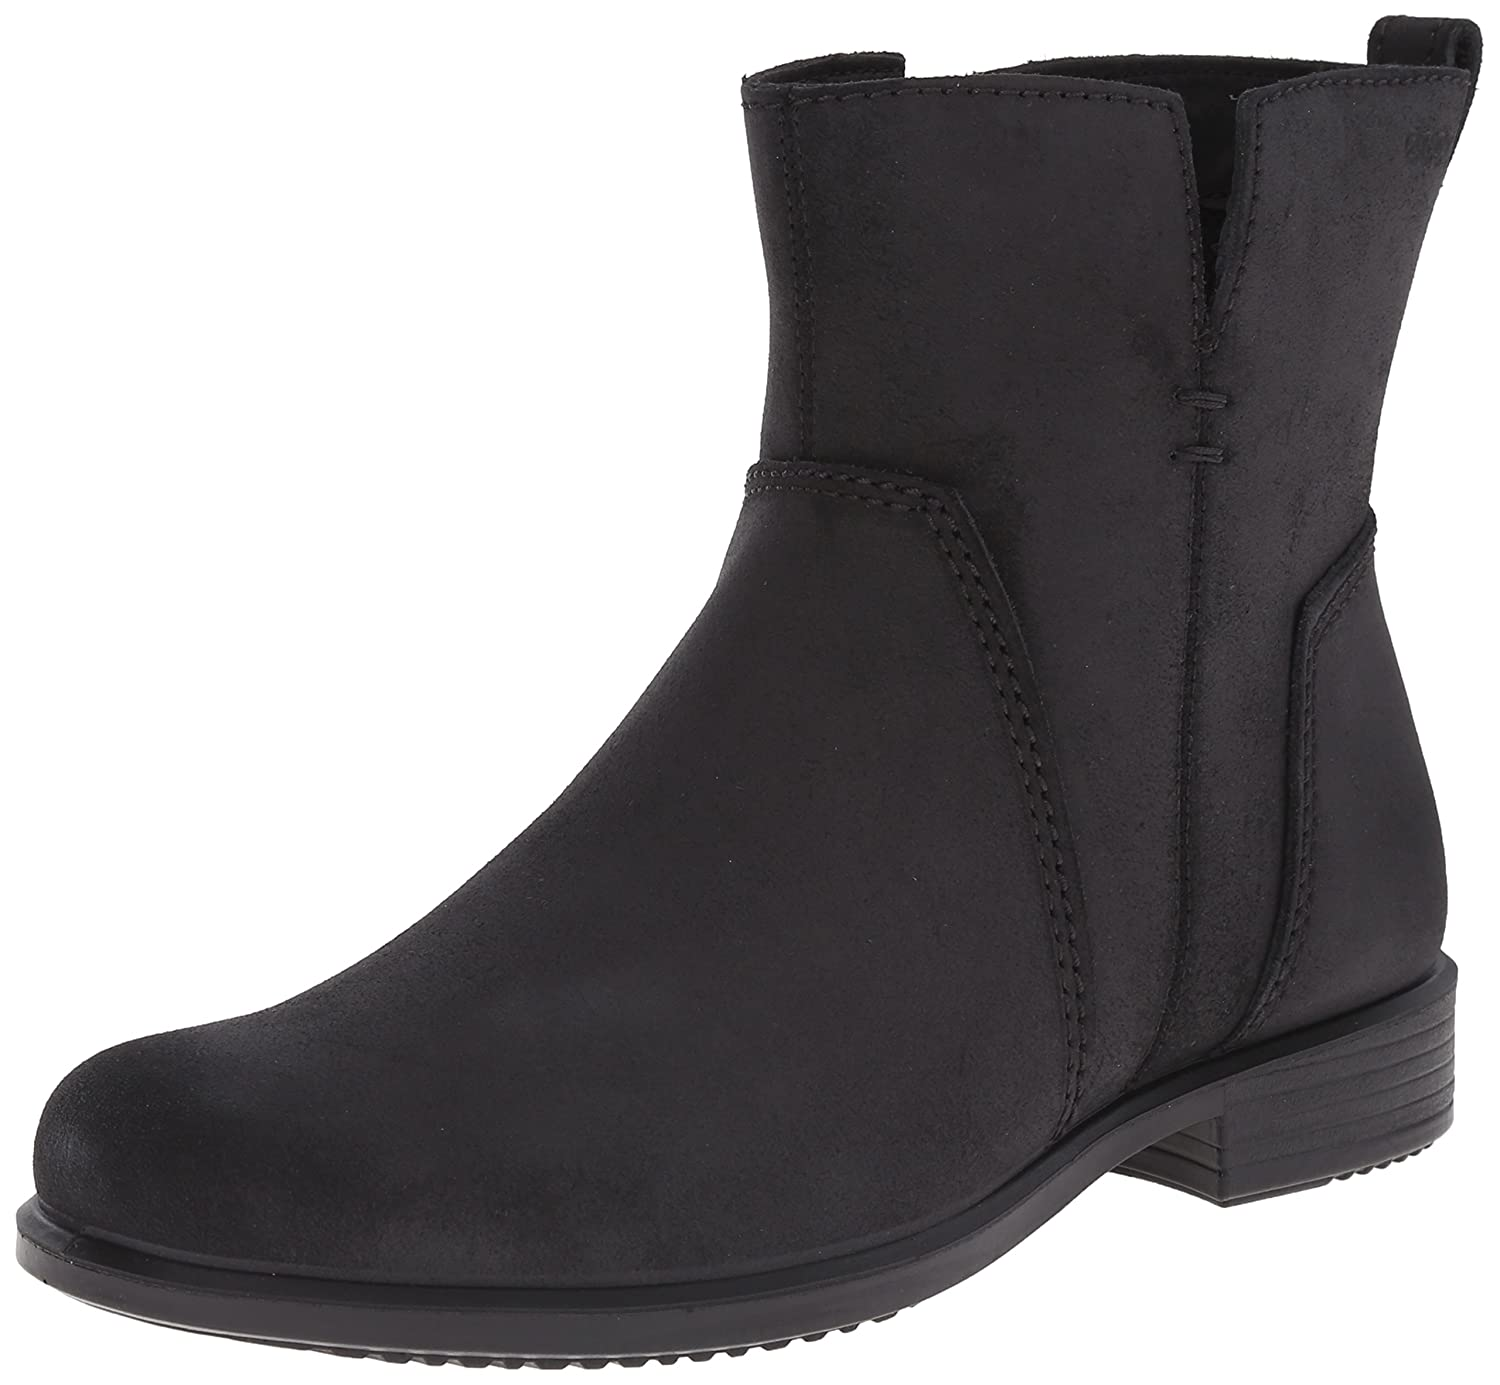 Black ECCO shoes Women's Touch 25 B Oil Suede Casual Boot